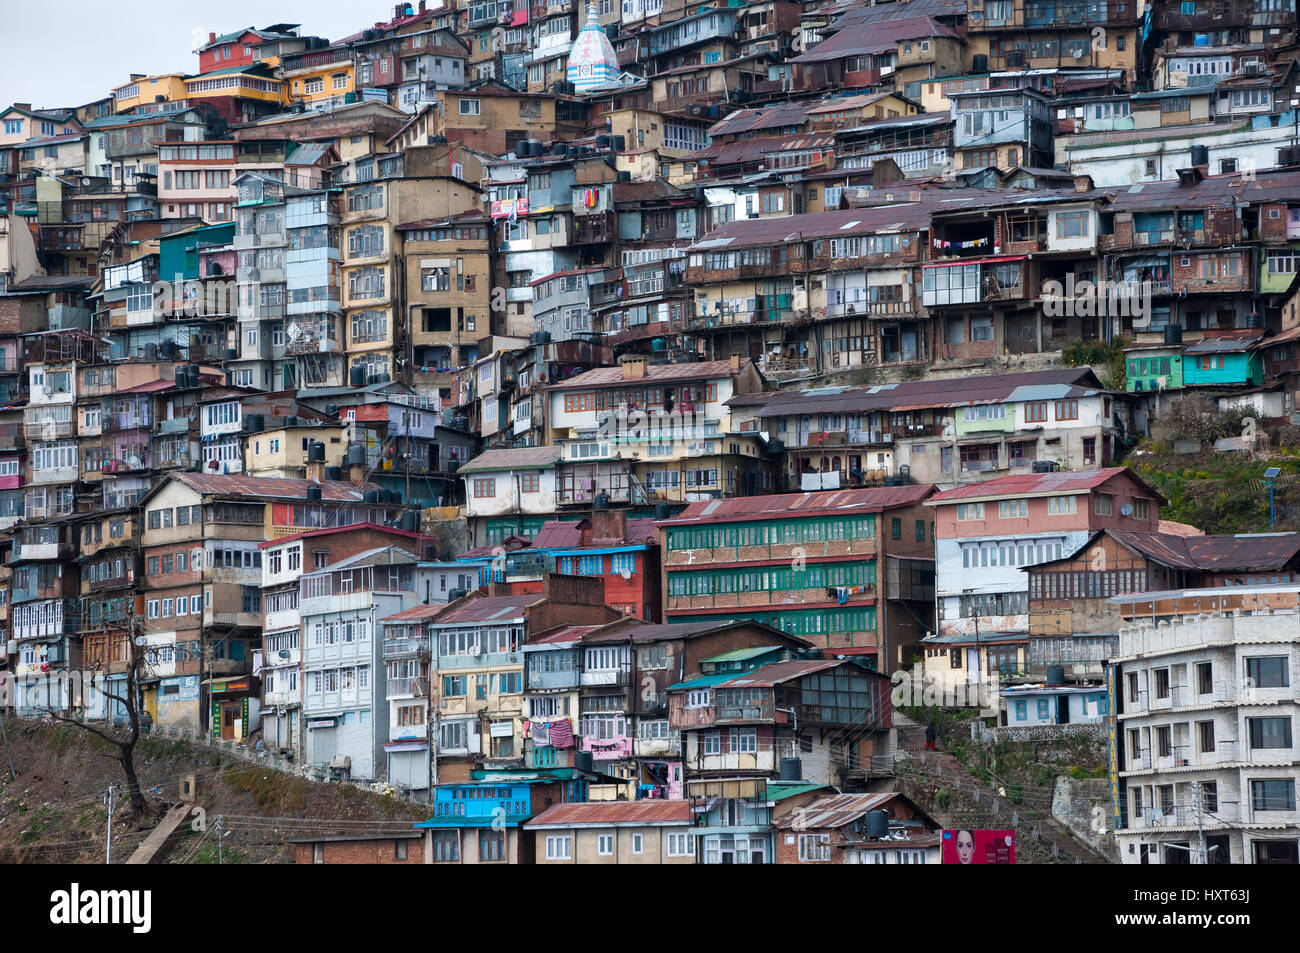 Crowded housing on the hillside in Shimla, Himachal Pradesh, India. - Stock Image